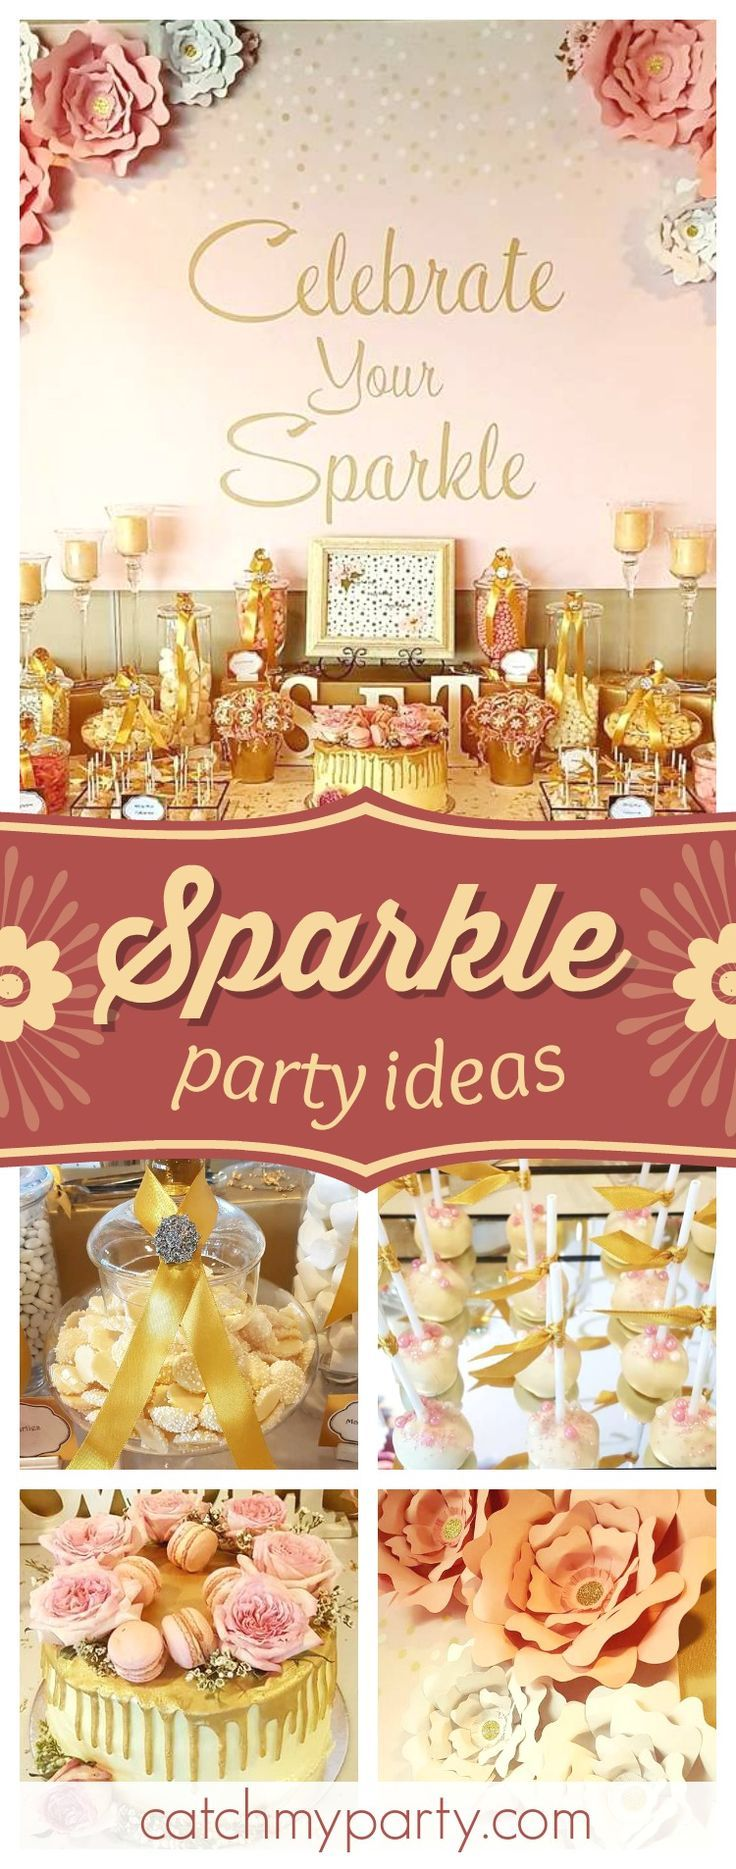 Take a look at this wonderful Sparkle birthday party! The birthday cake is amazing!! See more party ideas and share yours at CatchMyParty.com #girlbirthdayparty #sparkle